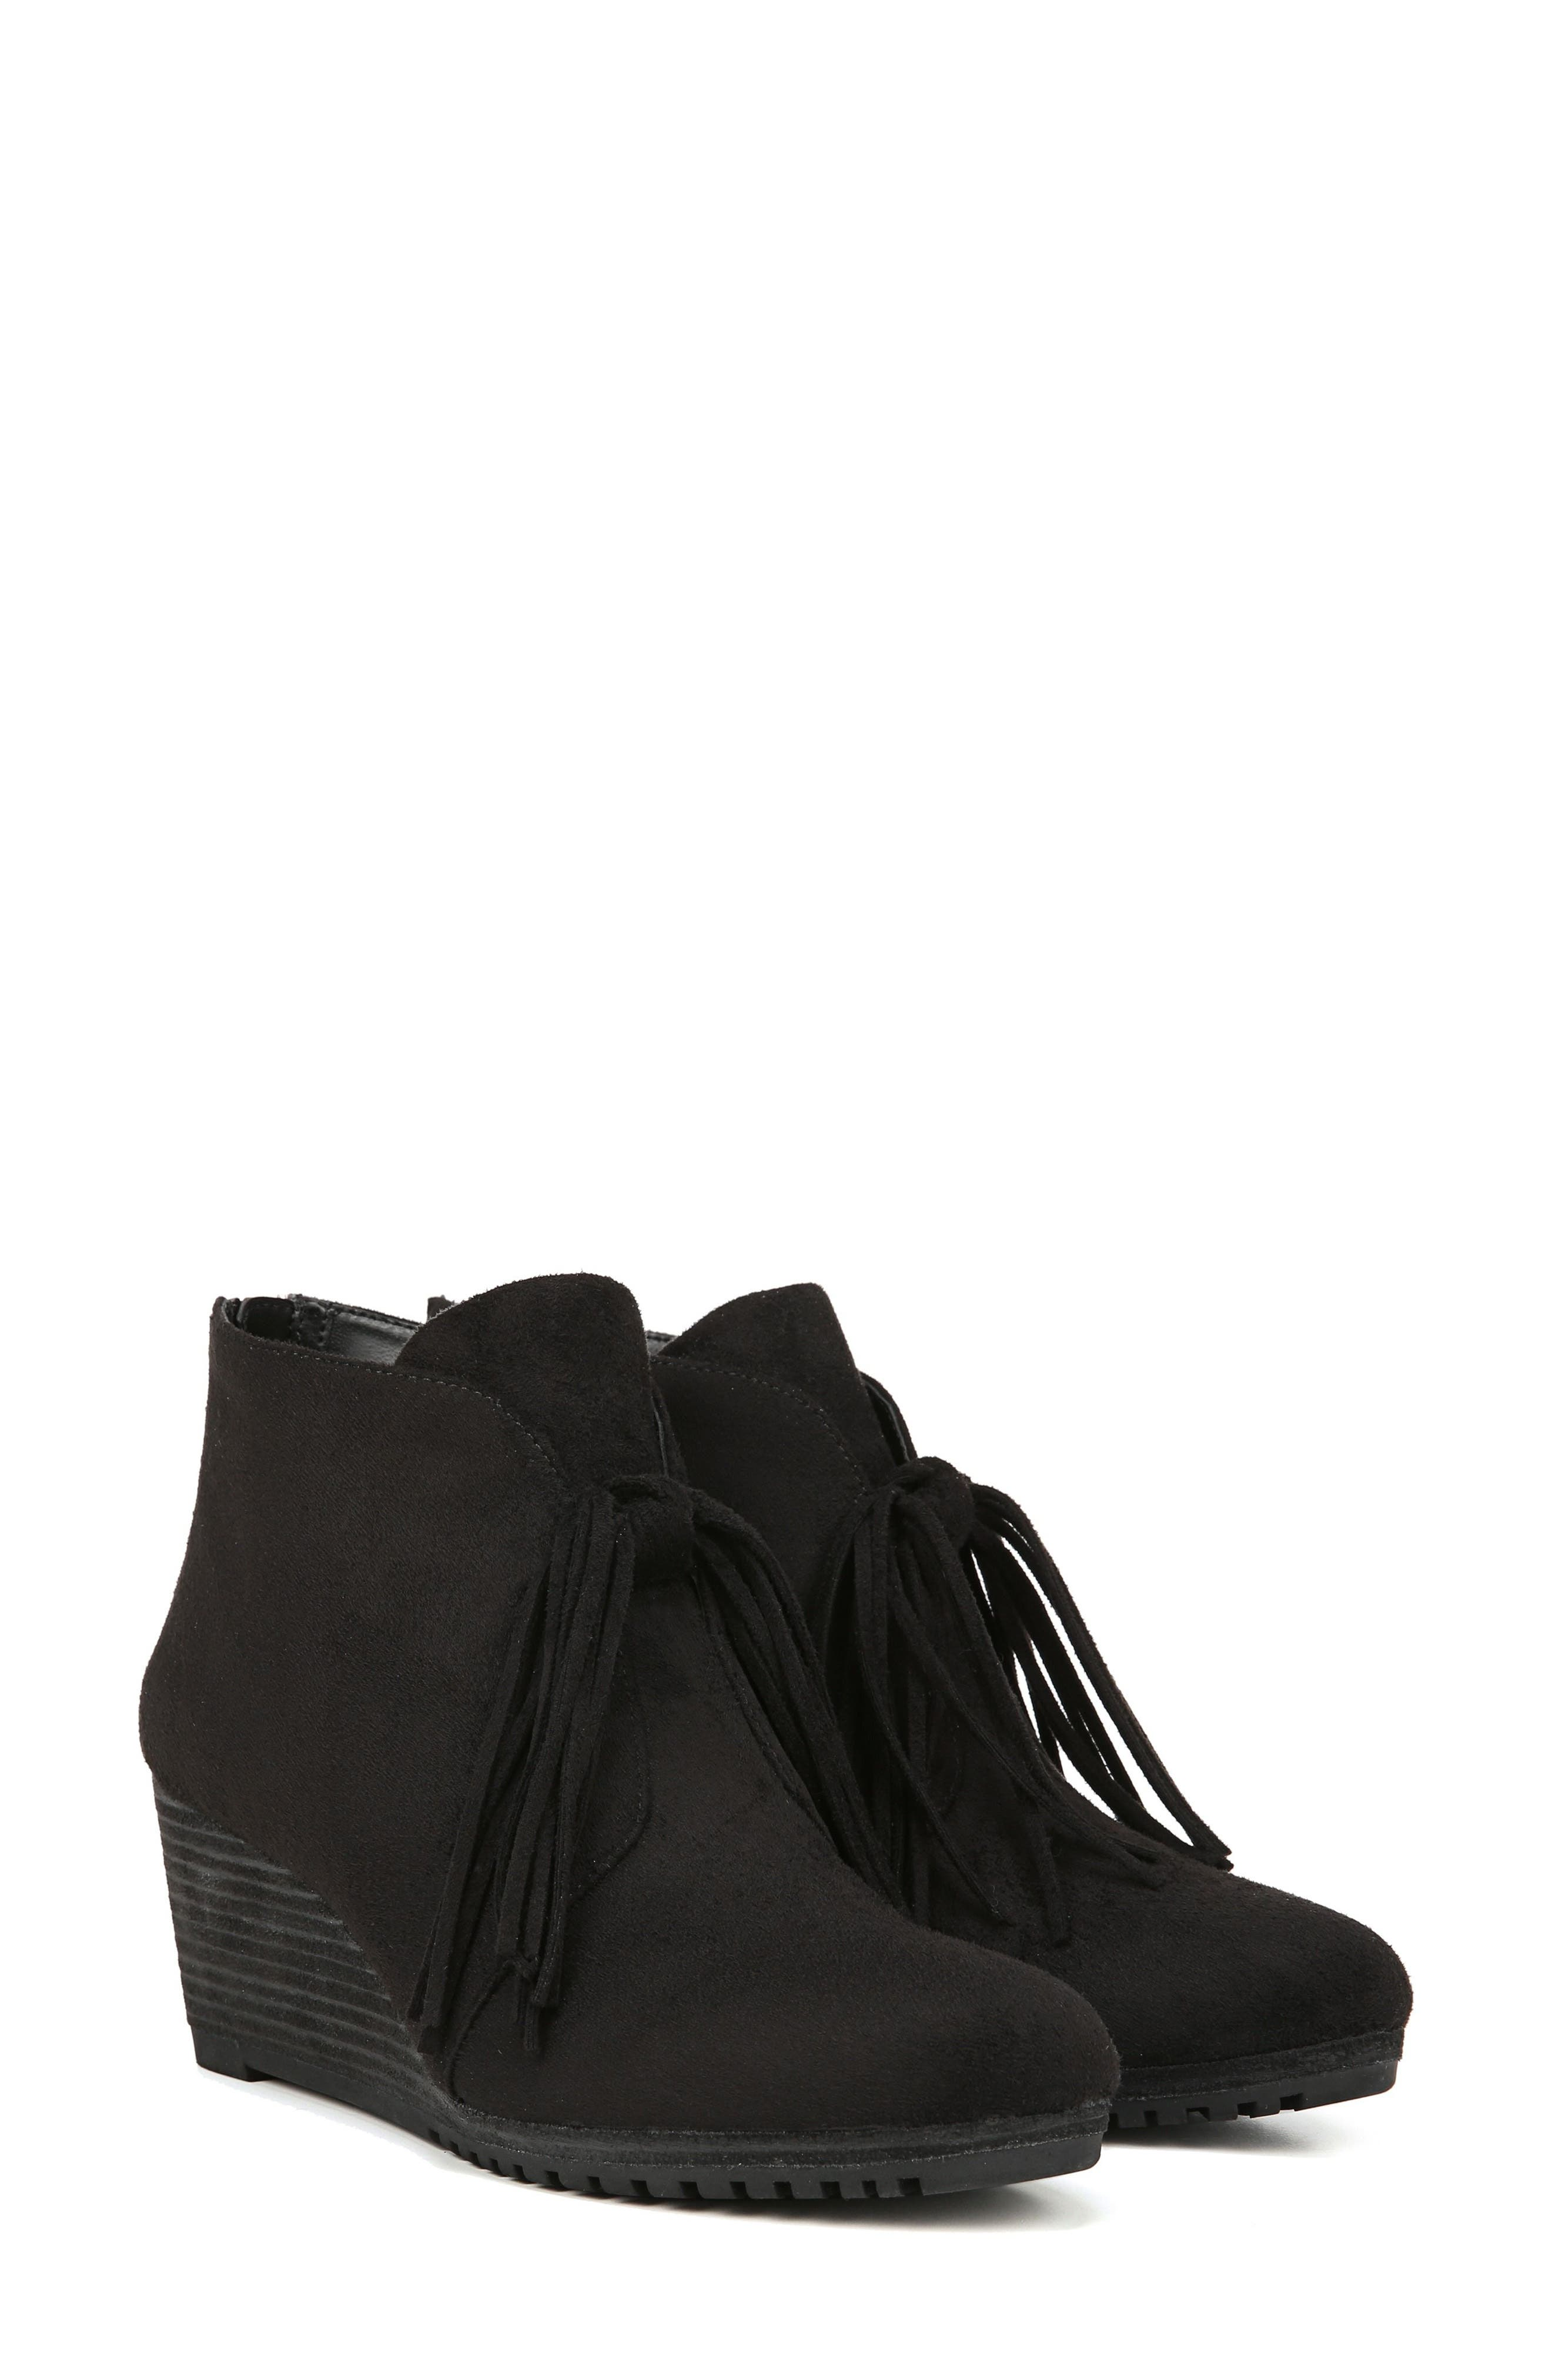 Classify Tassel Wedge Bootie,                             Alternate thumbnail 8, color,                             BLACK FABRIC